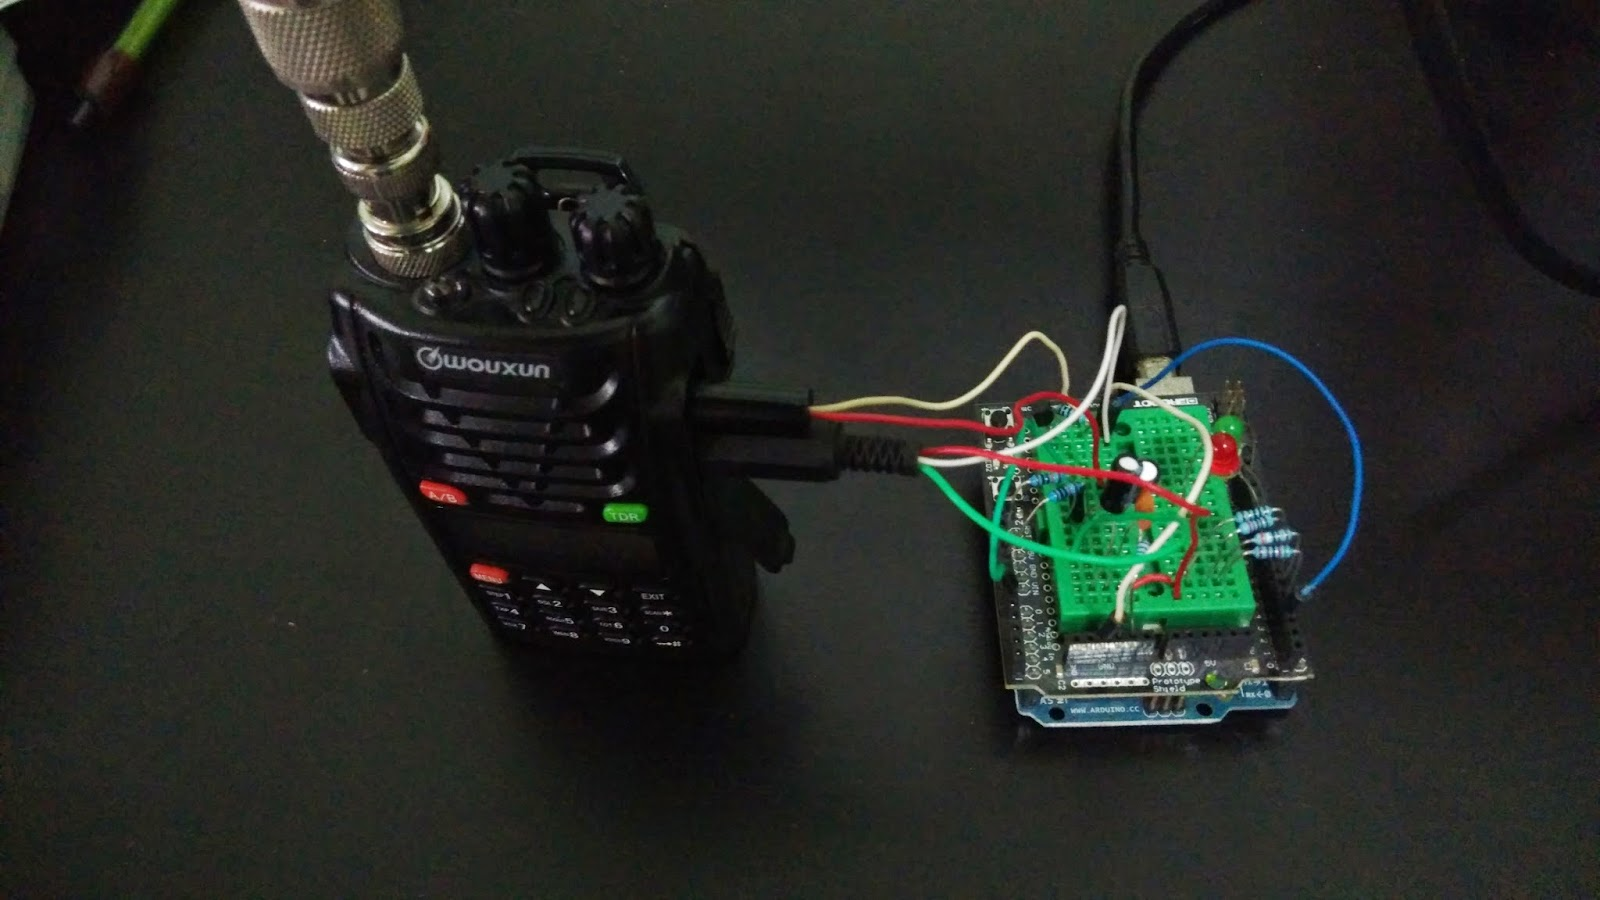 9W2SVT: Building an Open Source Arduino APRS Tracker with LCD & GPS